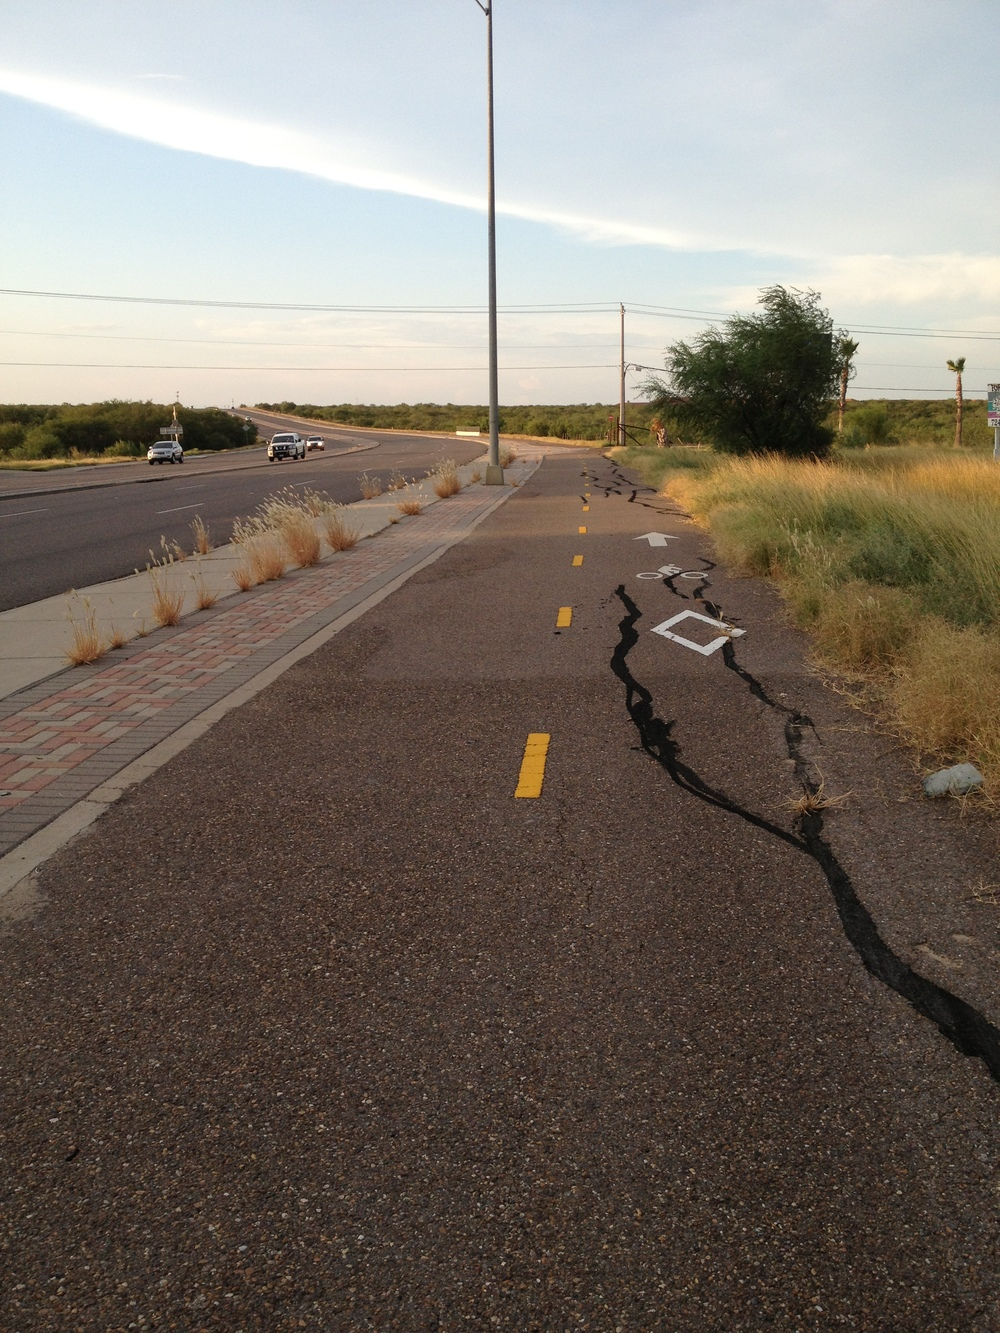 Bike Lane. Laredo, TX. Photo credit: Marisa Jones